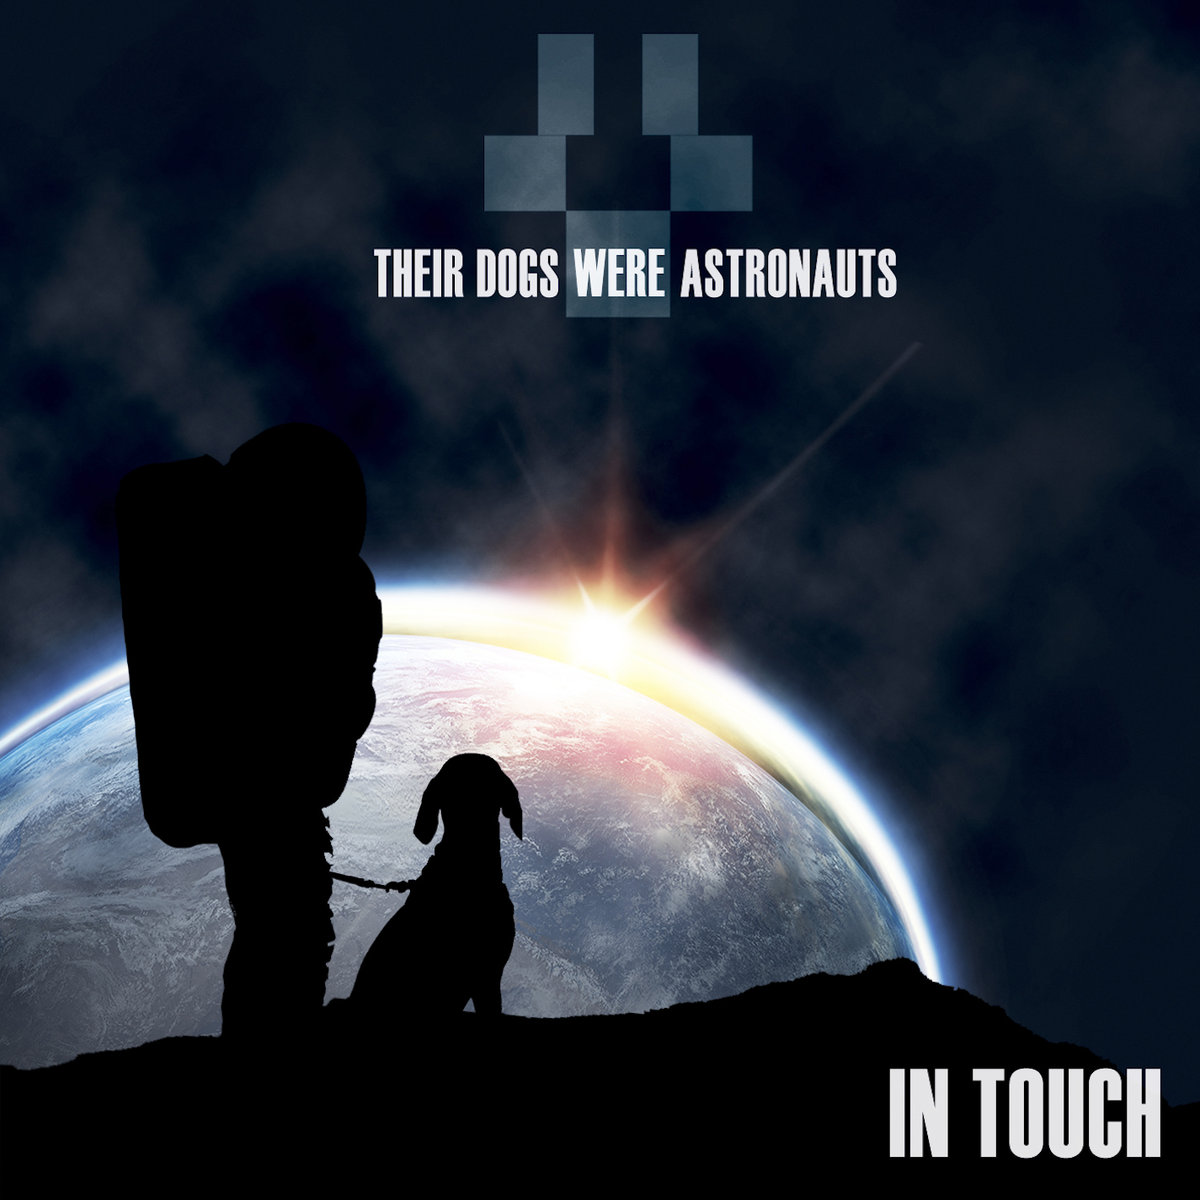 Their Dogs Were Astronauts - Overture @ 'In Touch' album (instrumental metal, metal)